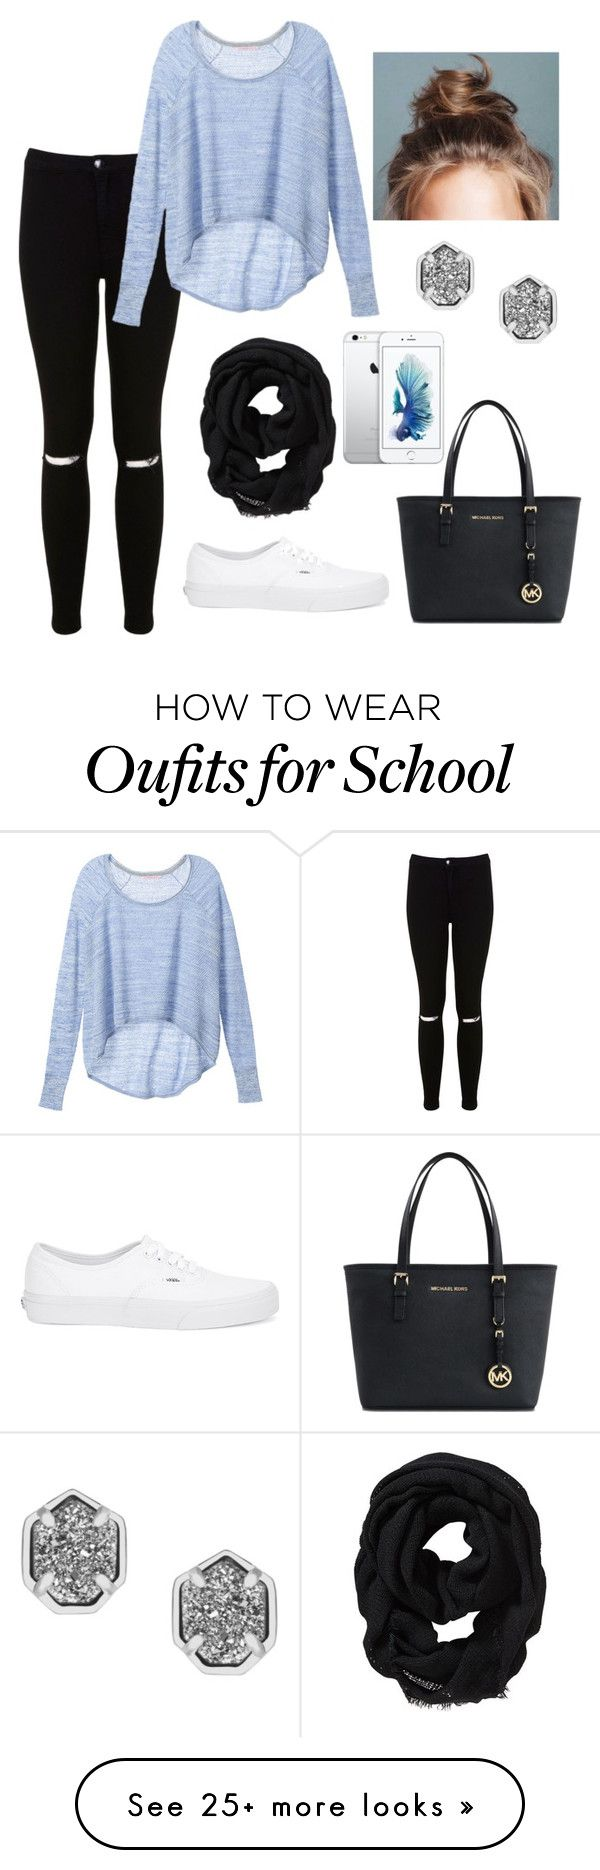 手机壳定制free walk women u  s walking shoe quot Casual school day quot by lindacoker on Polyvore featuring Miss Selfridge Victoria   s Secret Old Navy Vans Michael Kors and Kendra Scott